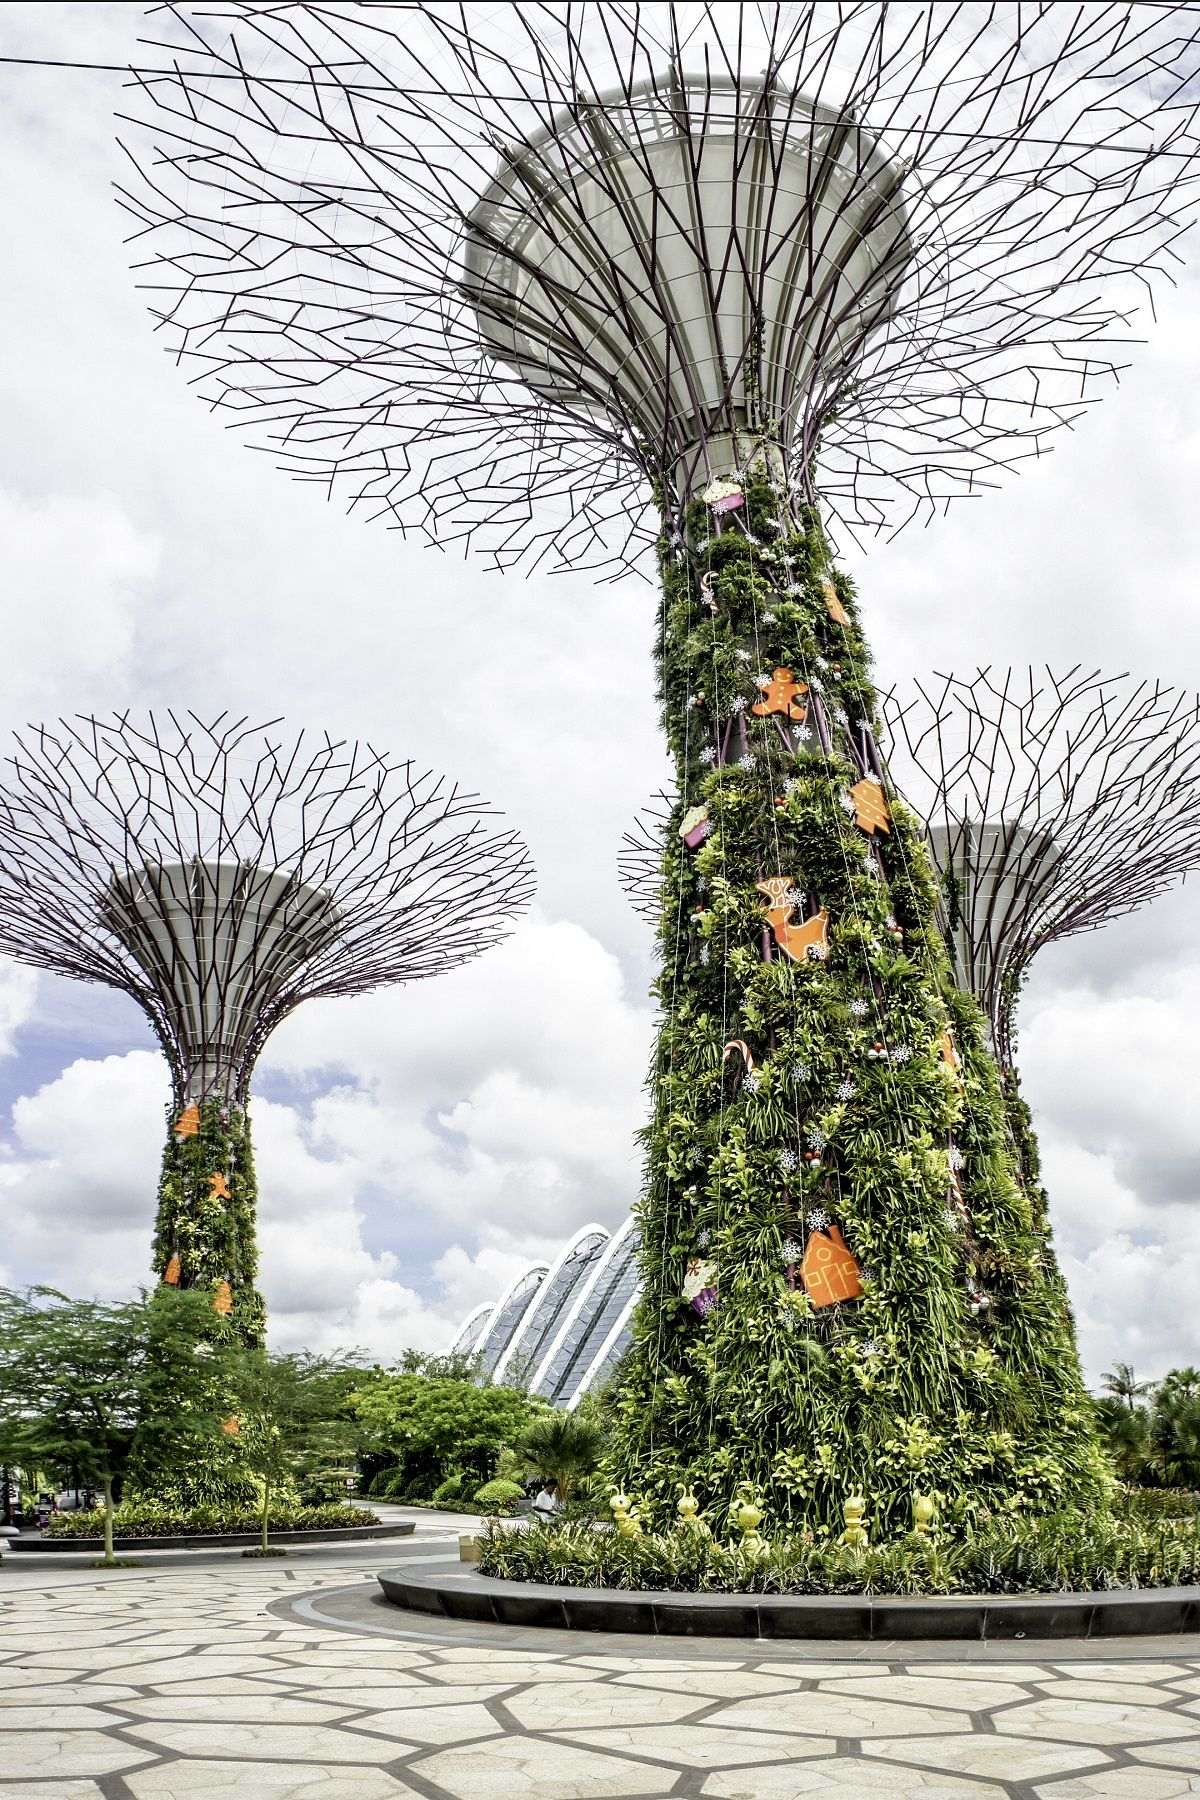 Visit Gardens by the Bay in Singapore with this admission